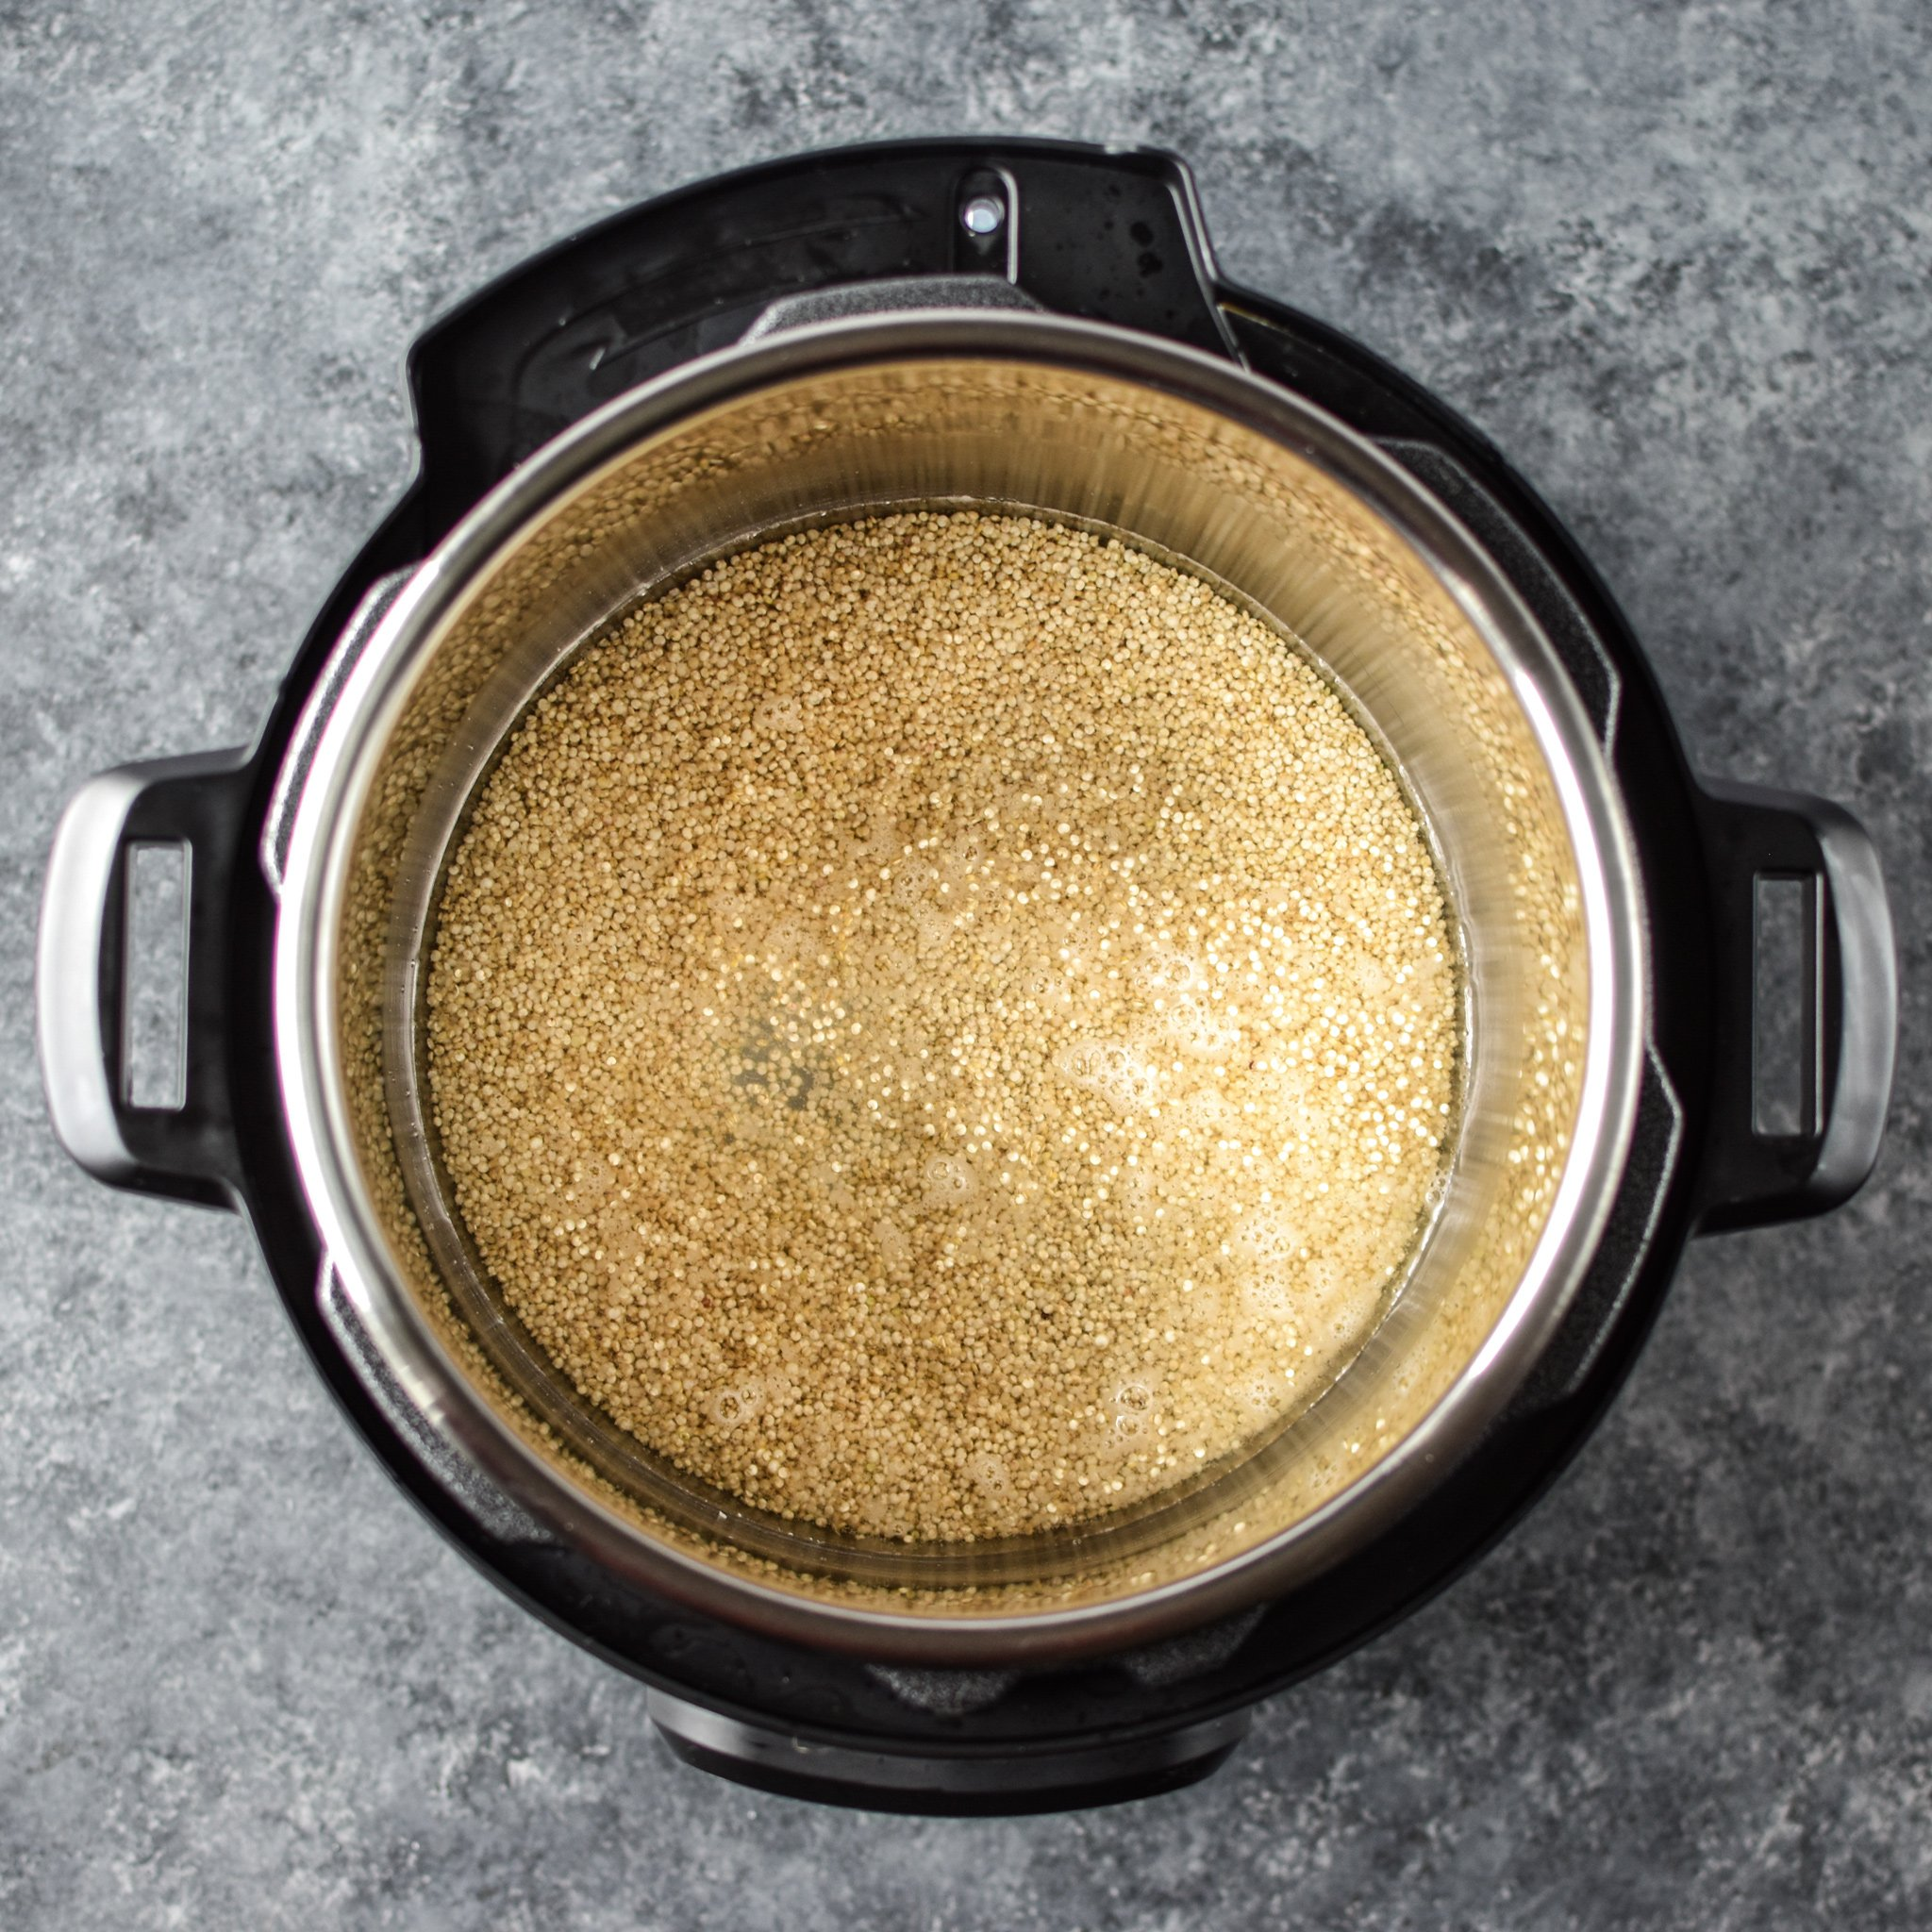 Instant pot with quinoa seen from above, uncooked and ready to be plugged in.